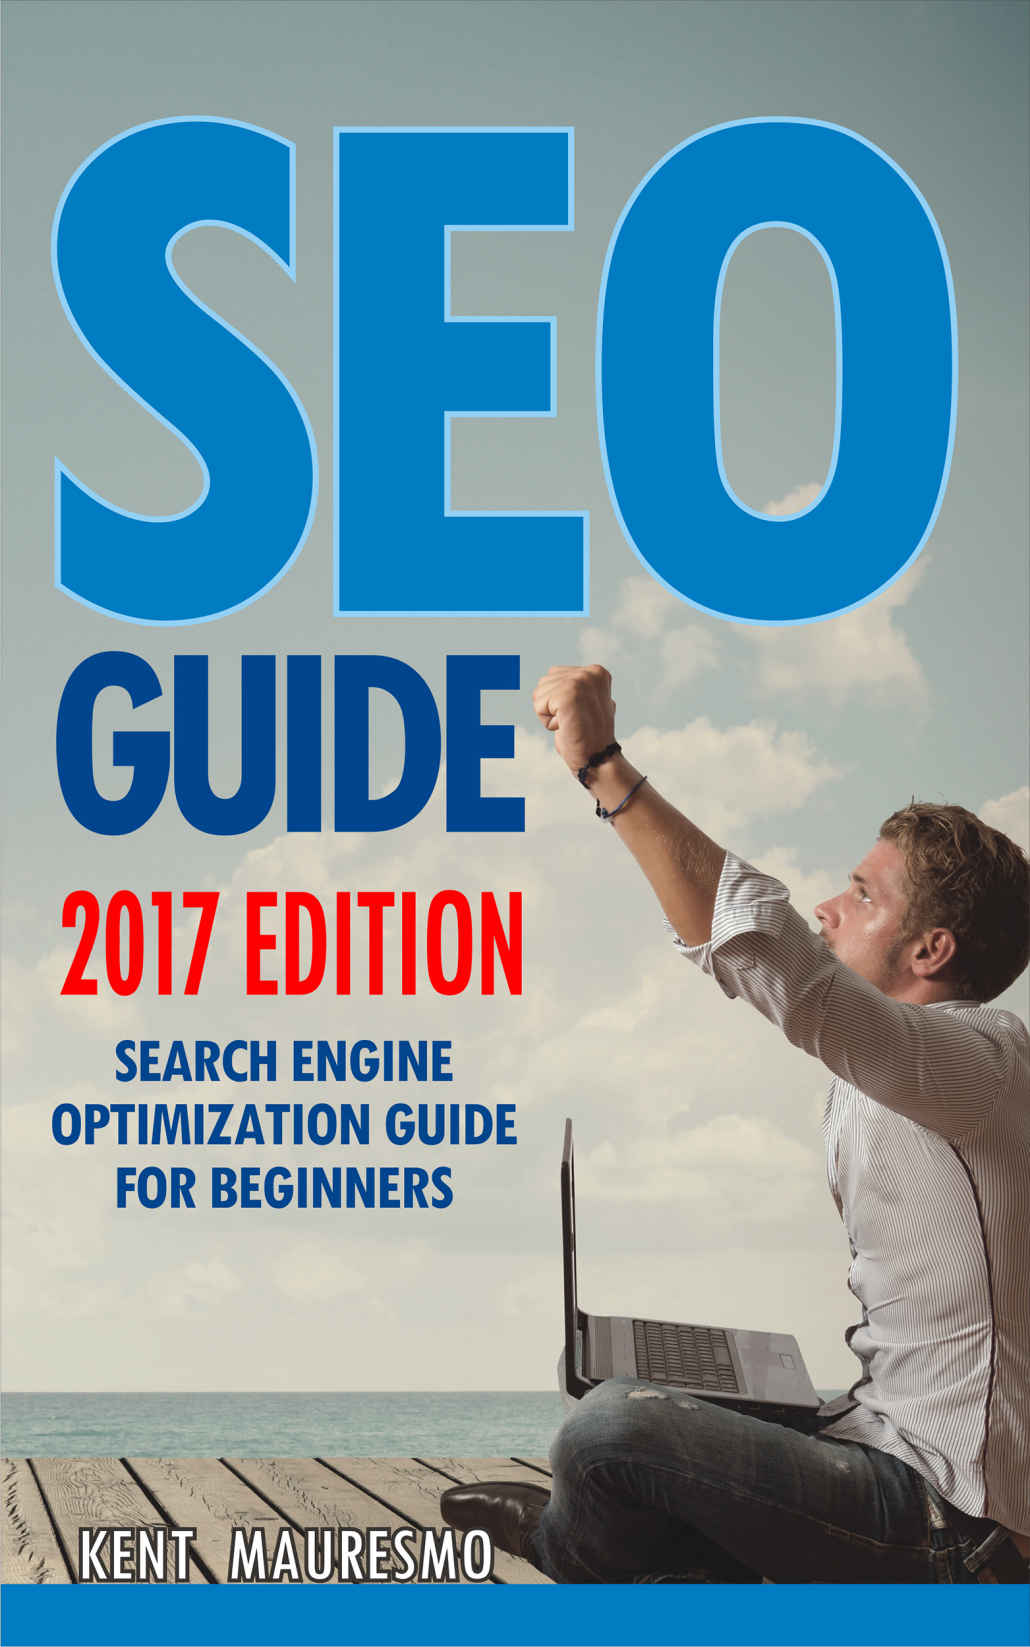 SEO for WordPress: How To Get Your Website on Page #1 of Google…Fast! [2nd Edition] by Kent Mauresmo